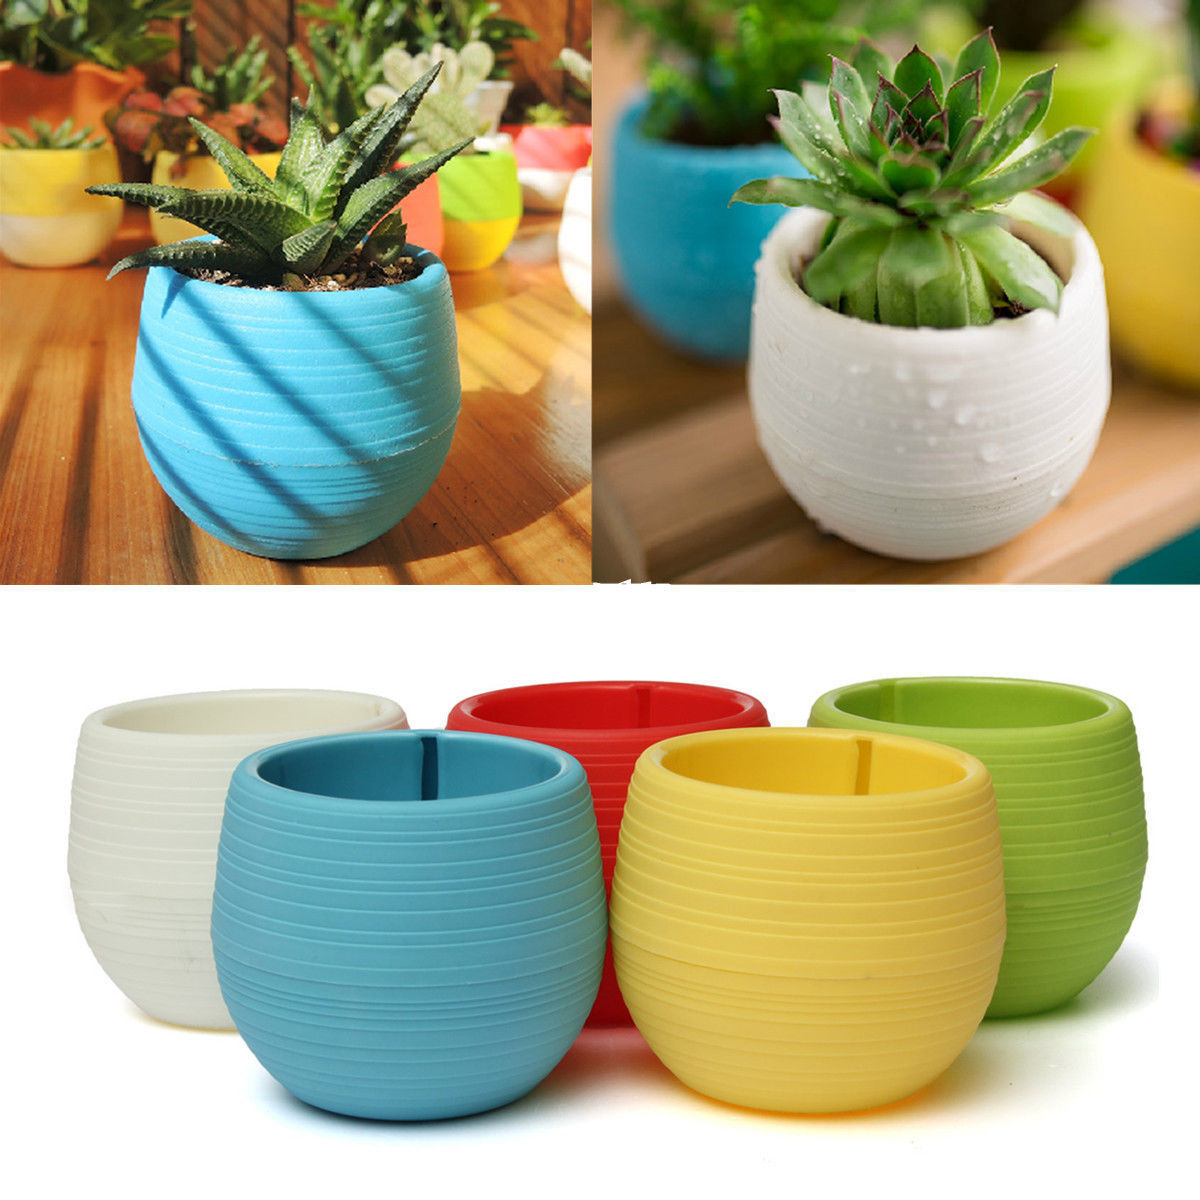 Buy Flower Pot And Get Free Shipping On Aliexpress